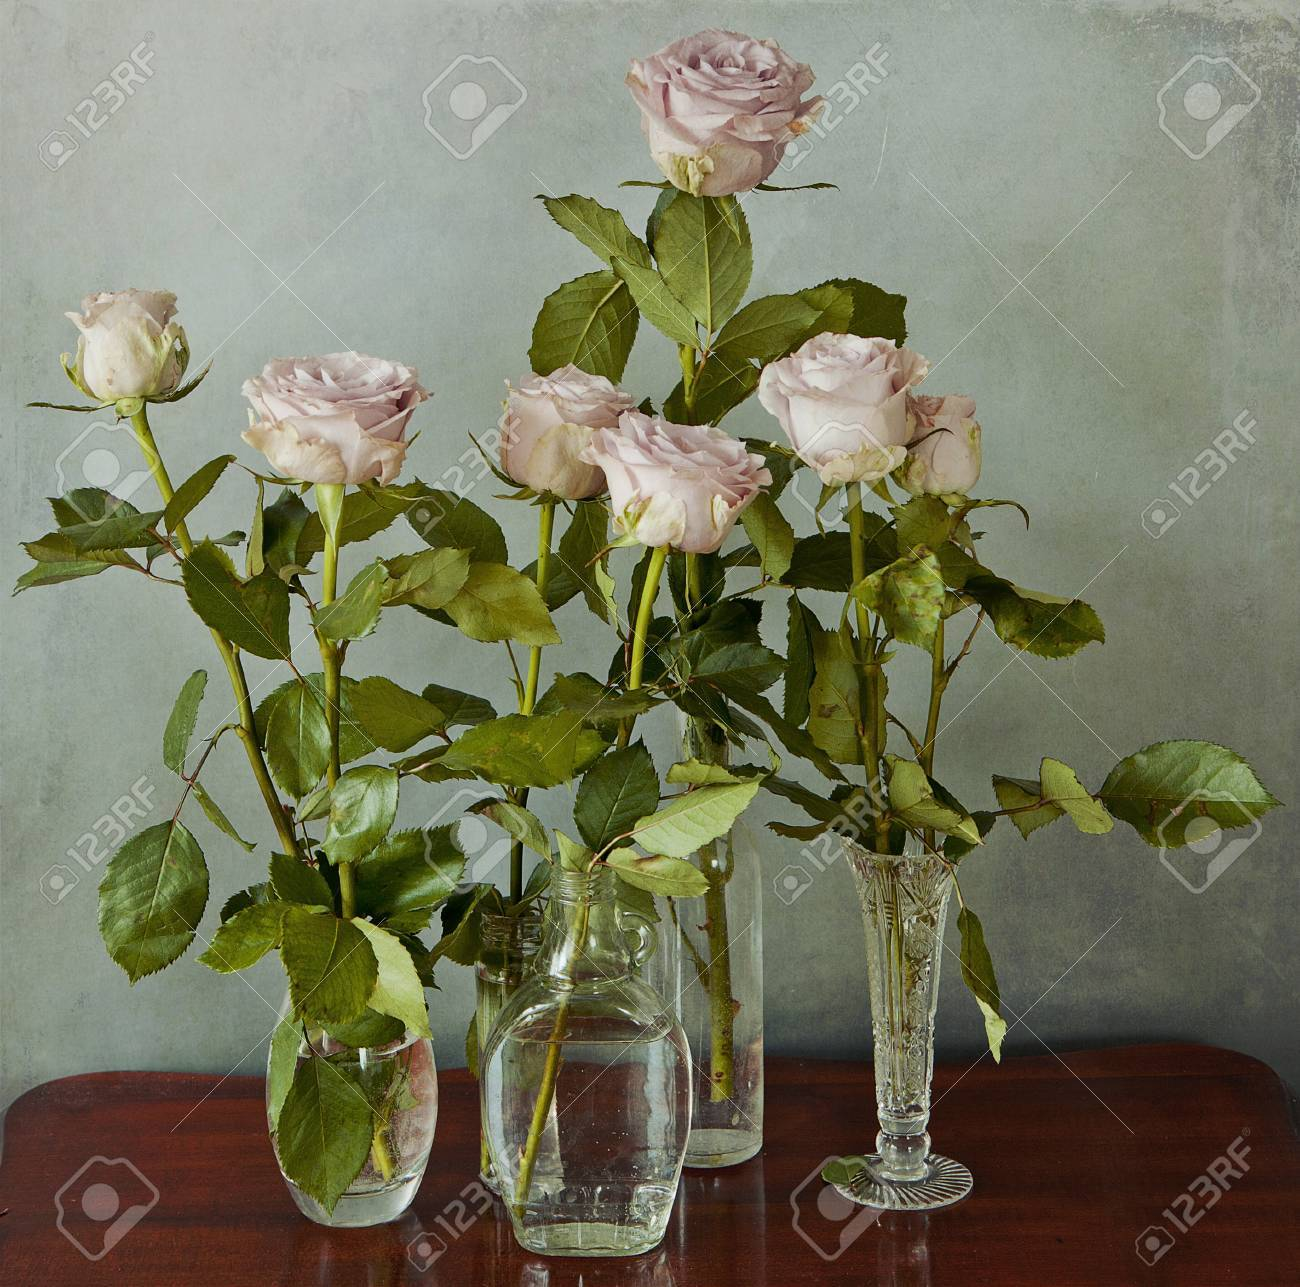 Arrangement of pink roses in glass vases on a wooden table and arrangement of pink roses in glass vases on a wooden table and grunge background stock photo reviewsmspy